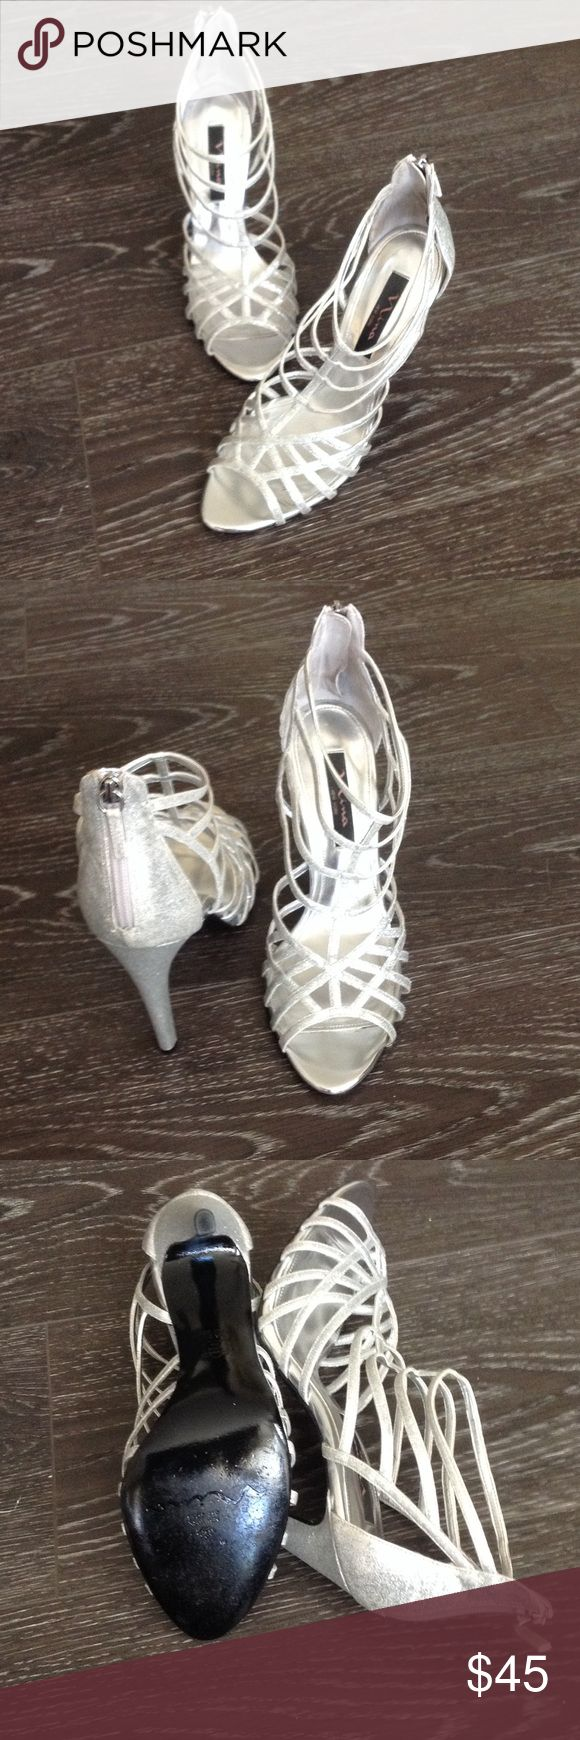 """Medina silver glitter heels worn once Perfect condition 4"""" heels. Zip back closure. Silver glitter. Worn for a few hours only. Nina Shoes Heels"""